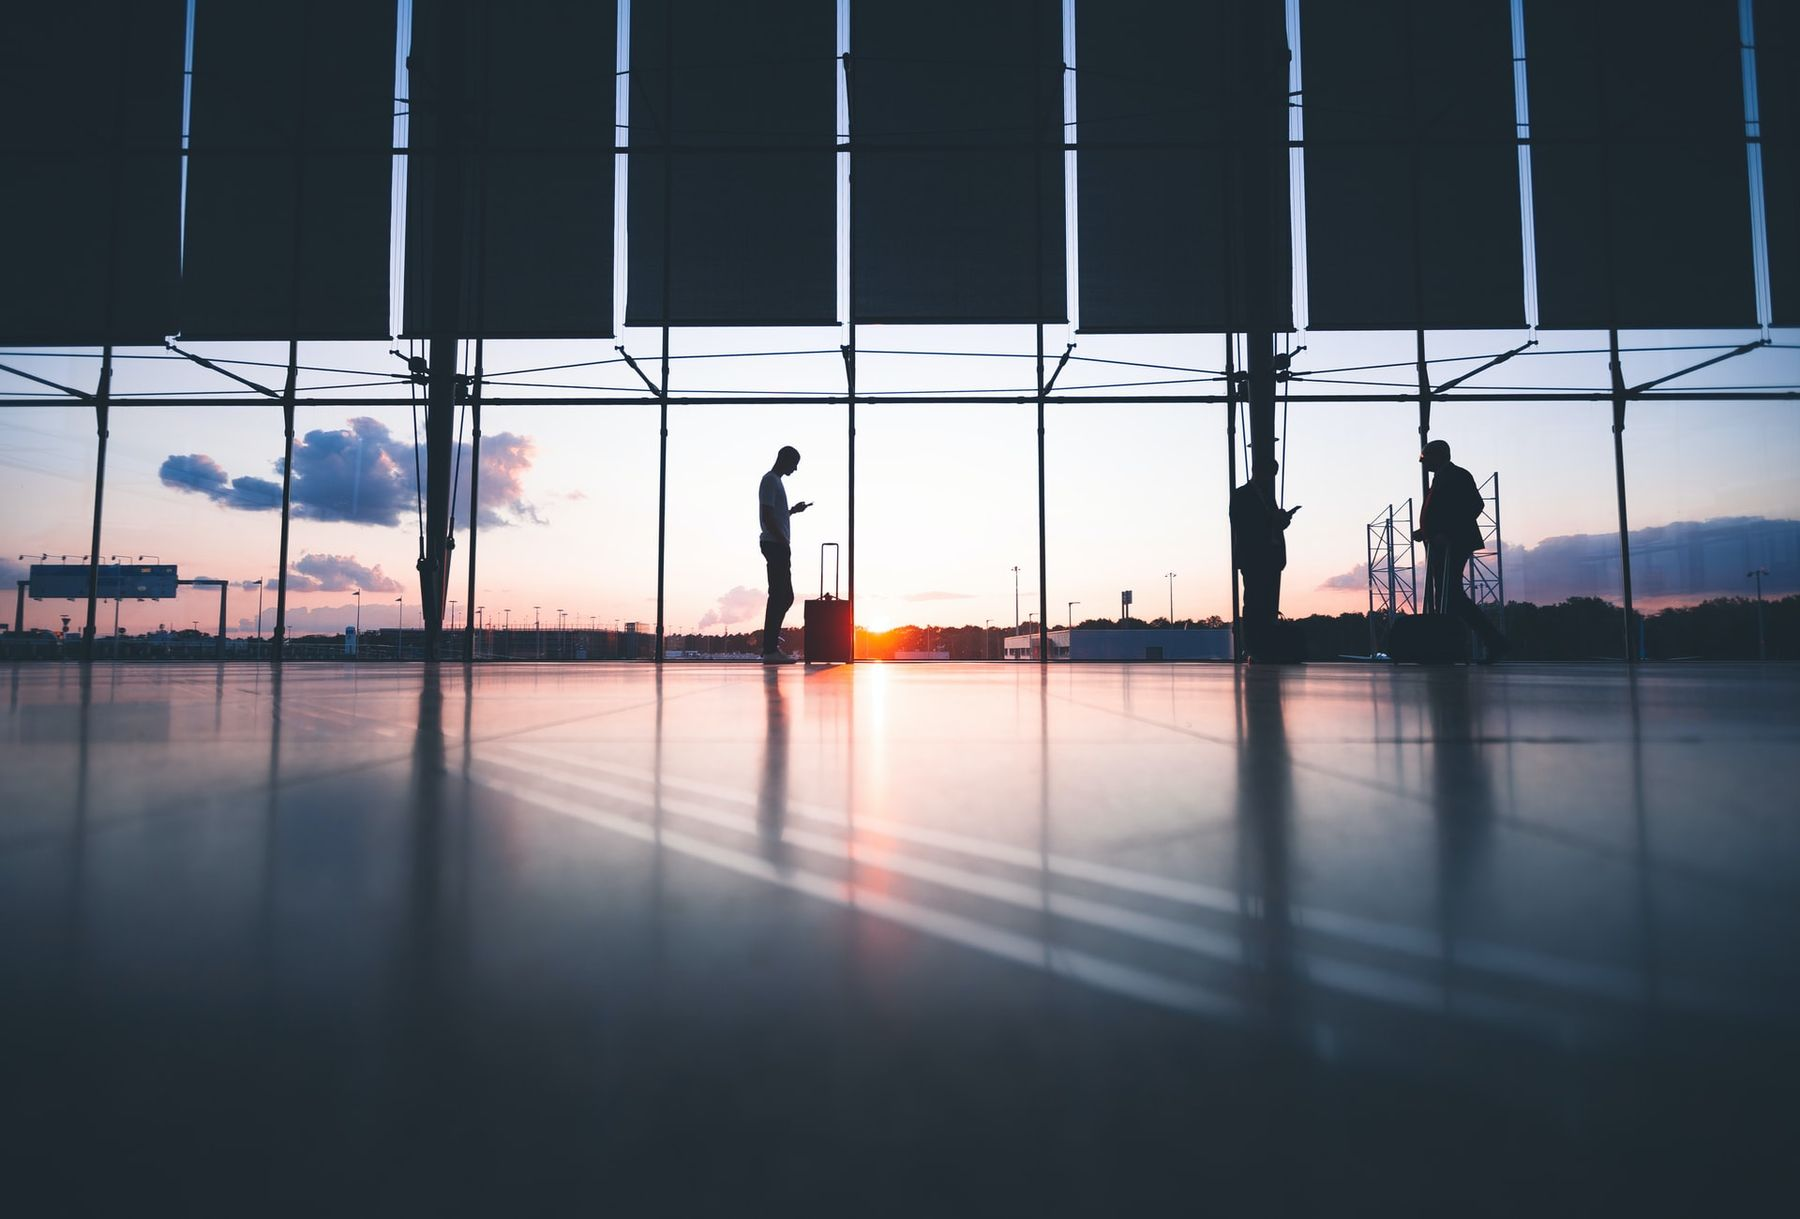 Lone figure standing in a nearly empty airport